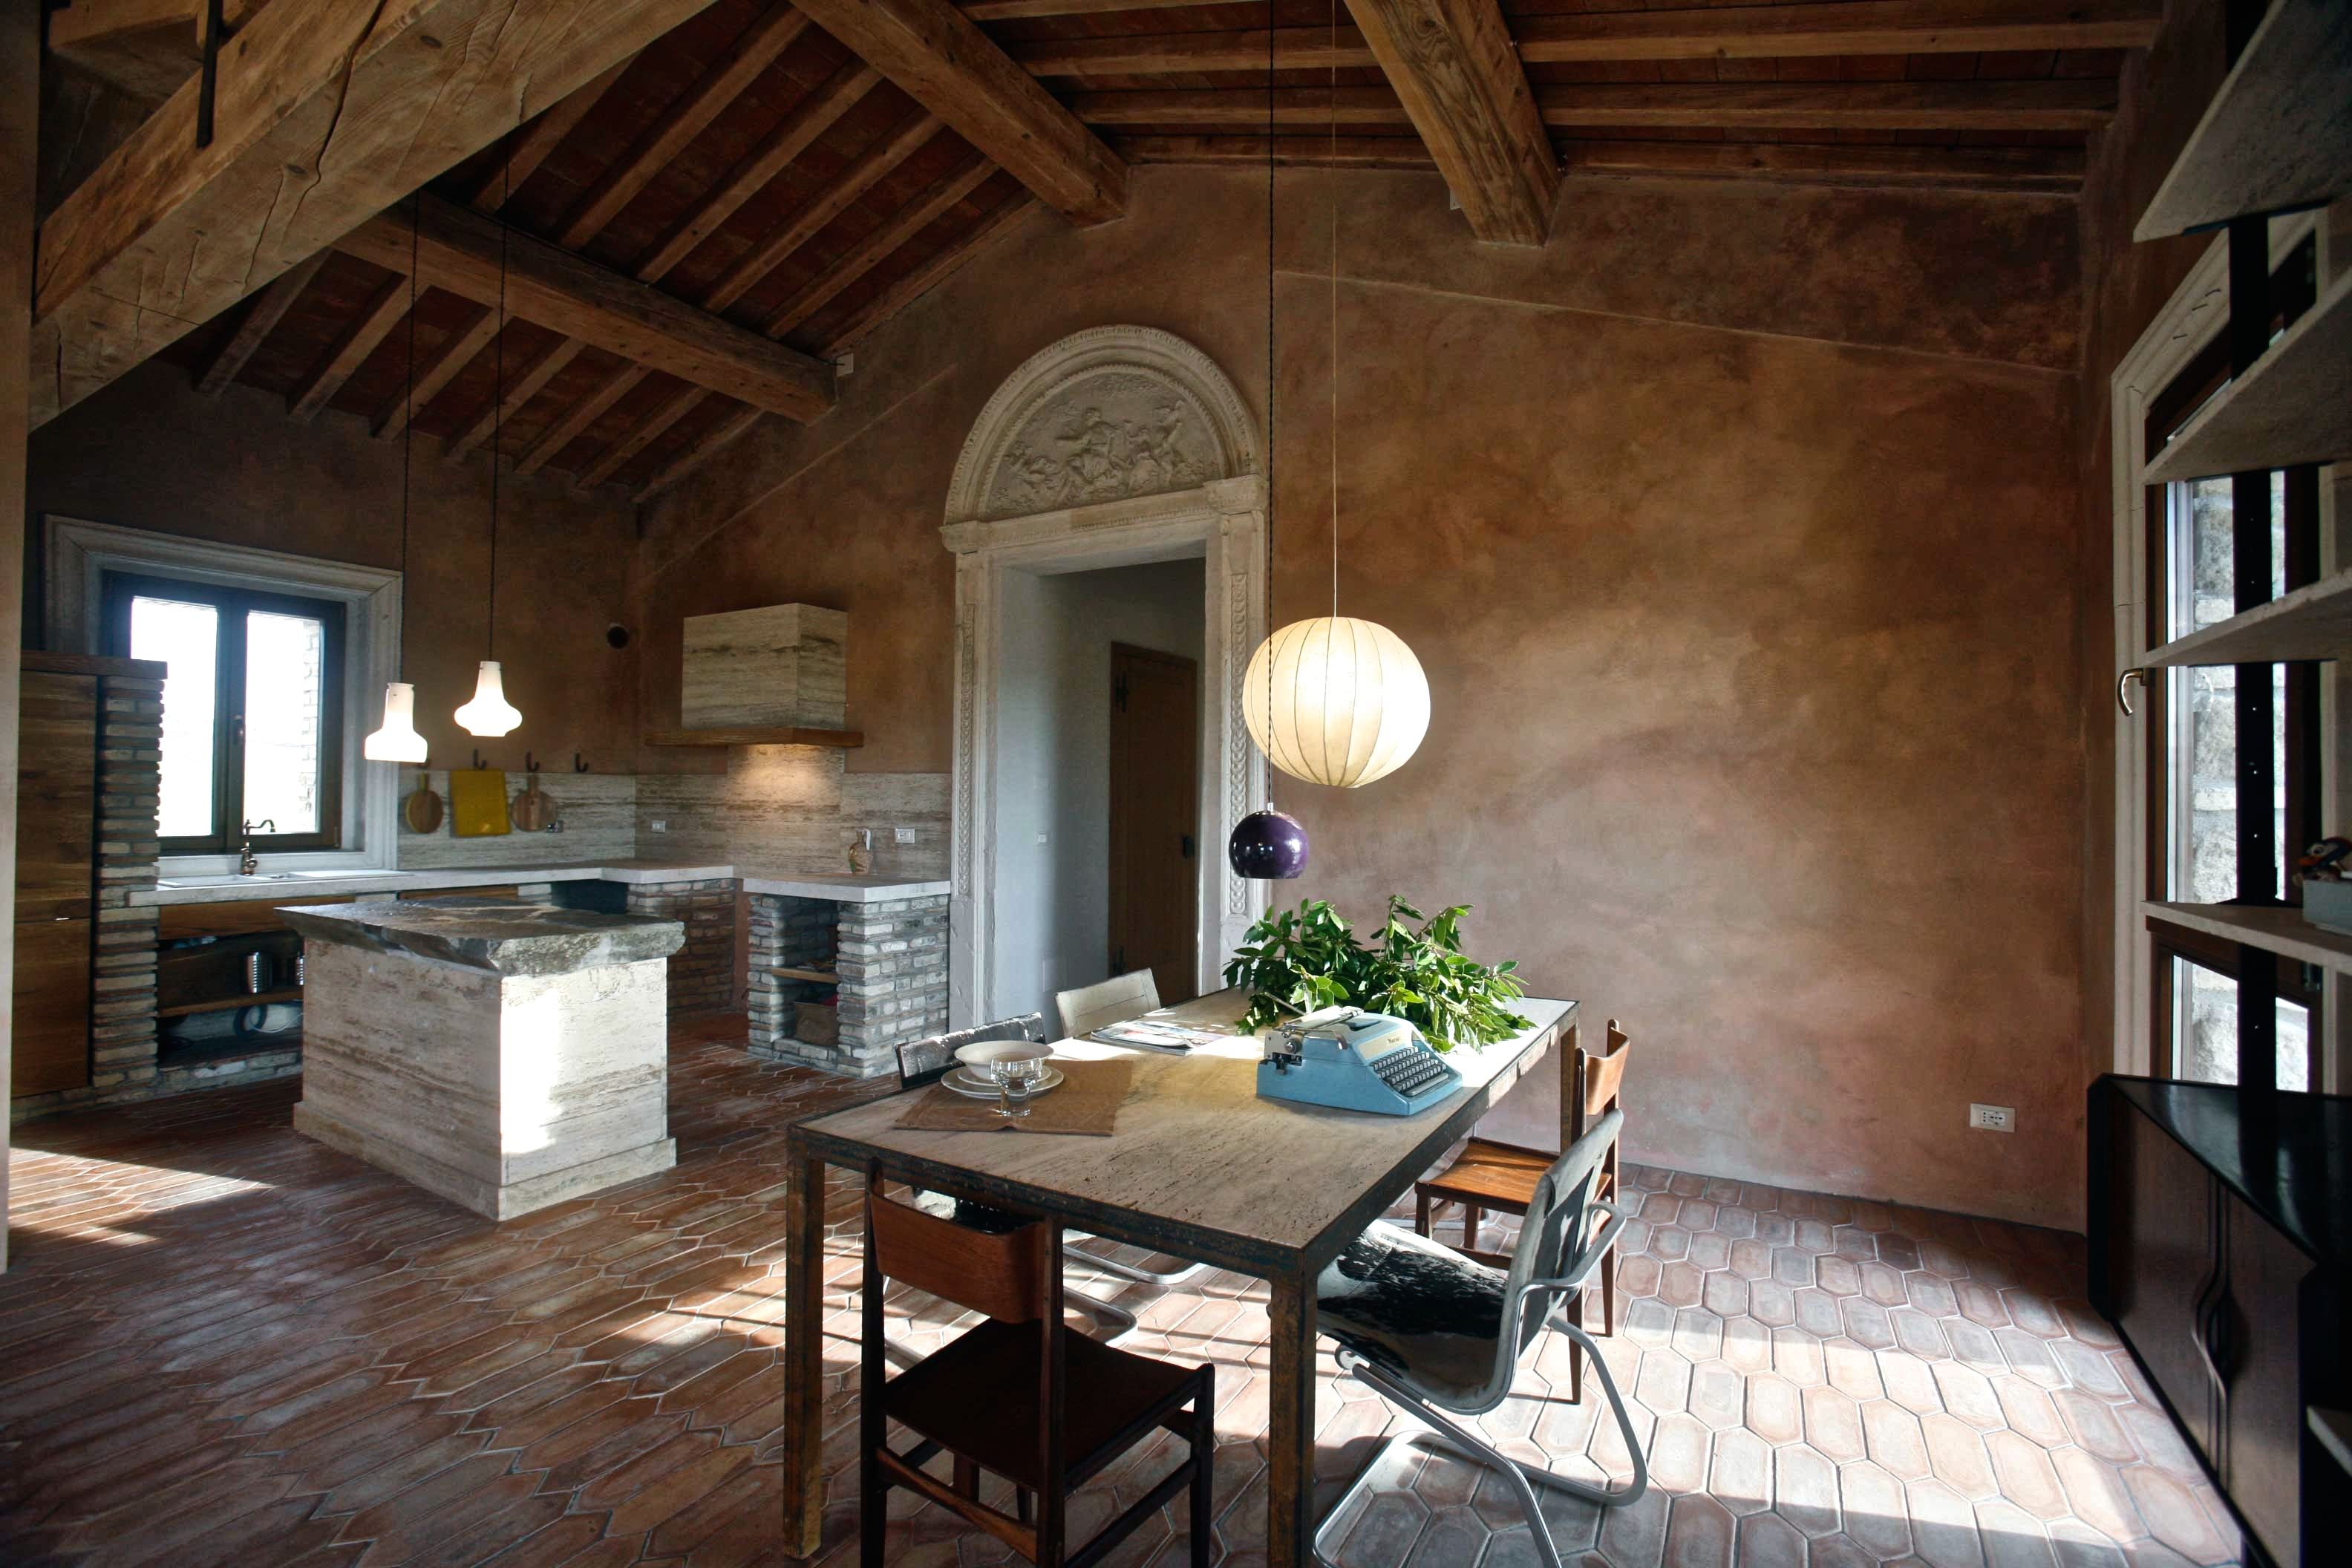 A Superb Vintage Style Italy Modernist Holiday Rental Apartment Mid Entry Modern Tuscany Forever